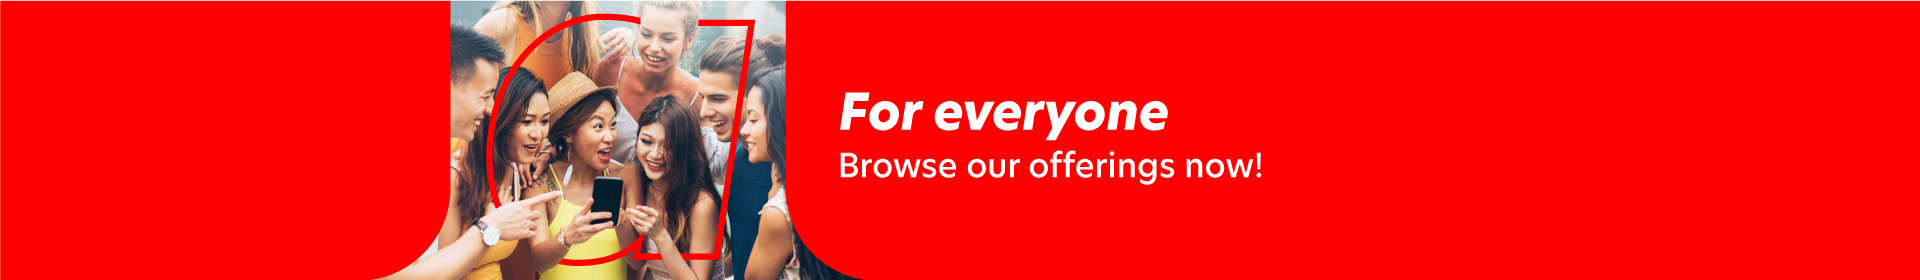 airasia.com for everyone: Browse our offerings now!